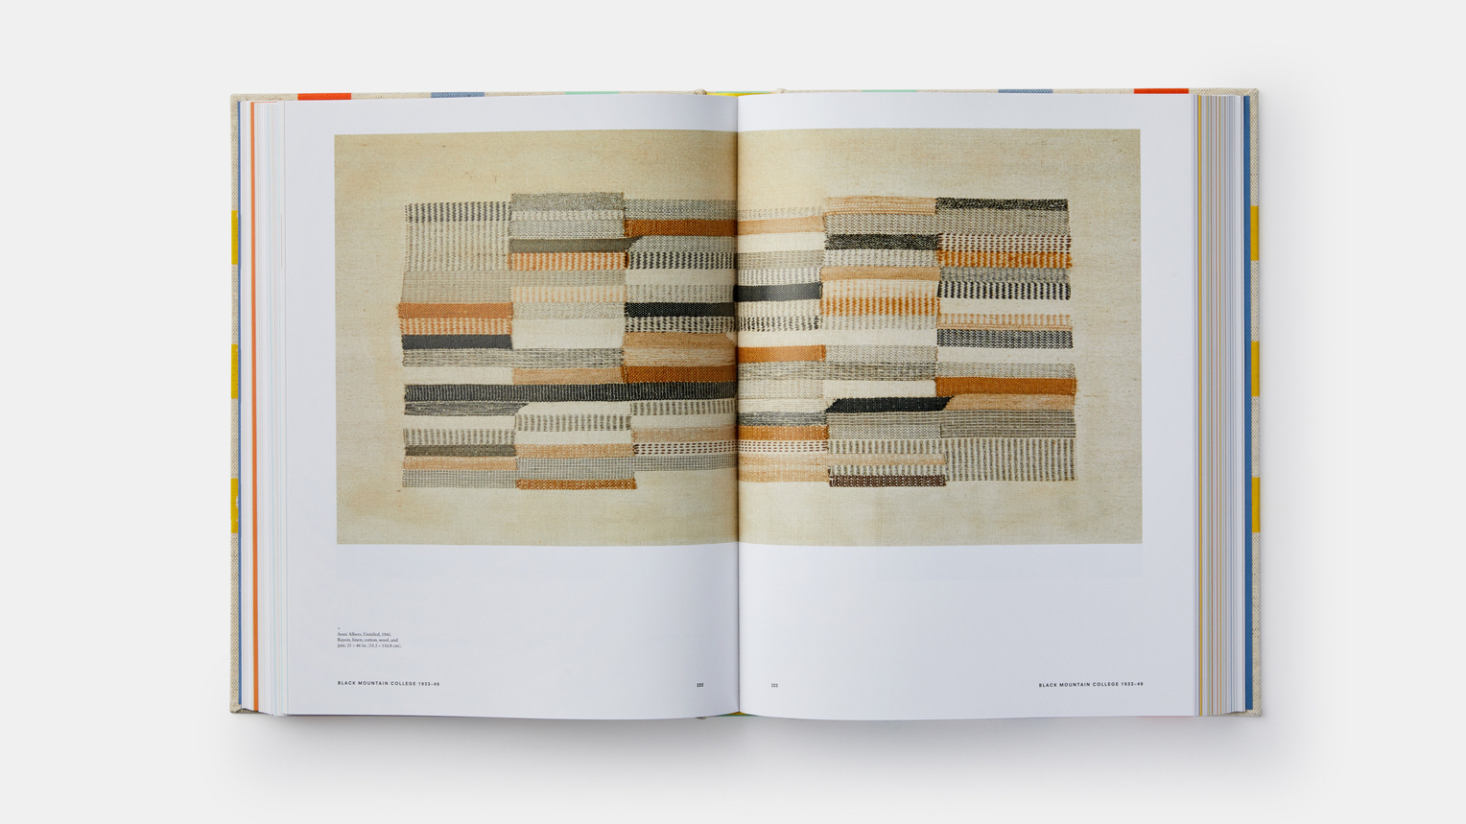 Anni and Josef Albers: Equal and Unequal, by Nicholas Fox Weber, is $8 from Bookshop and explores the work of the groundbreaking design couple.